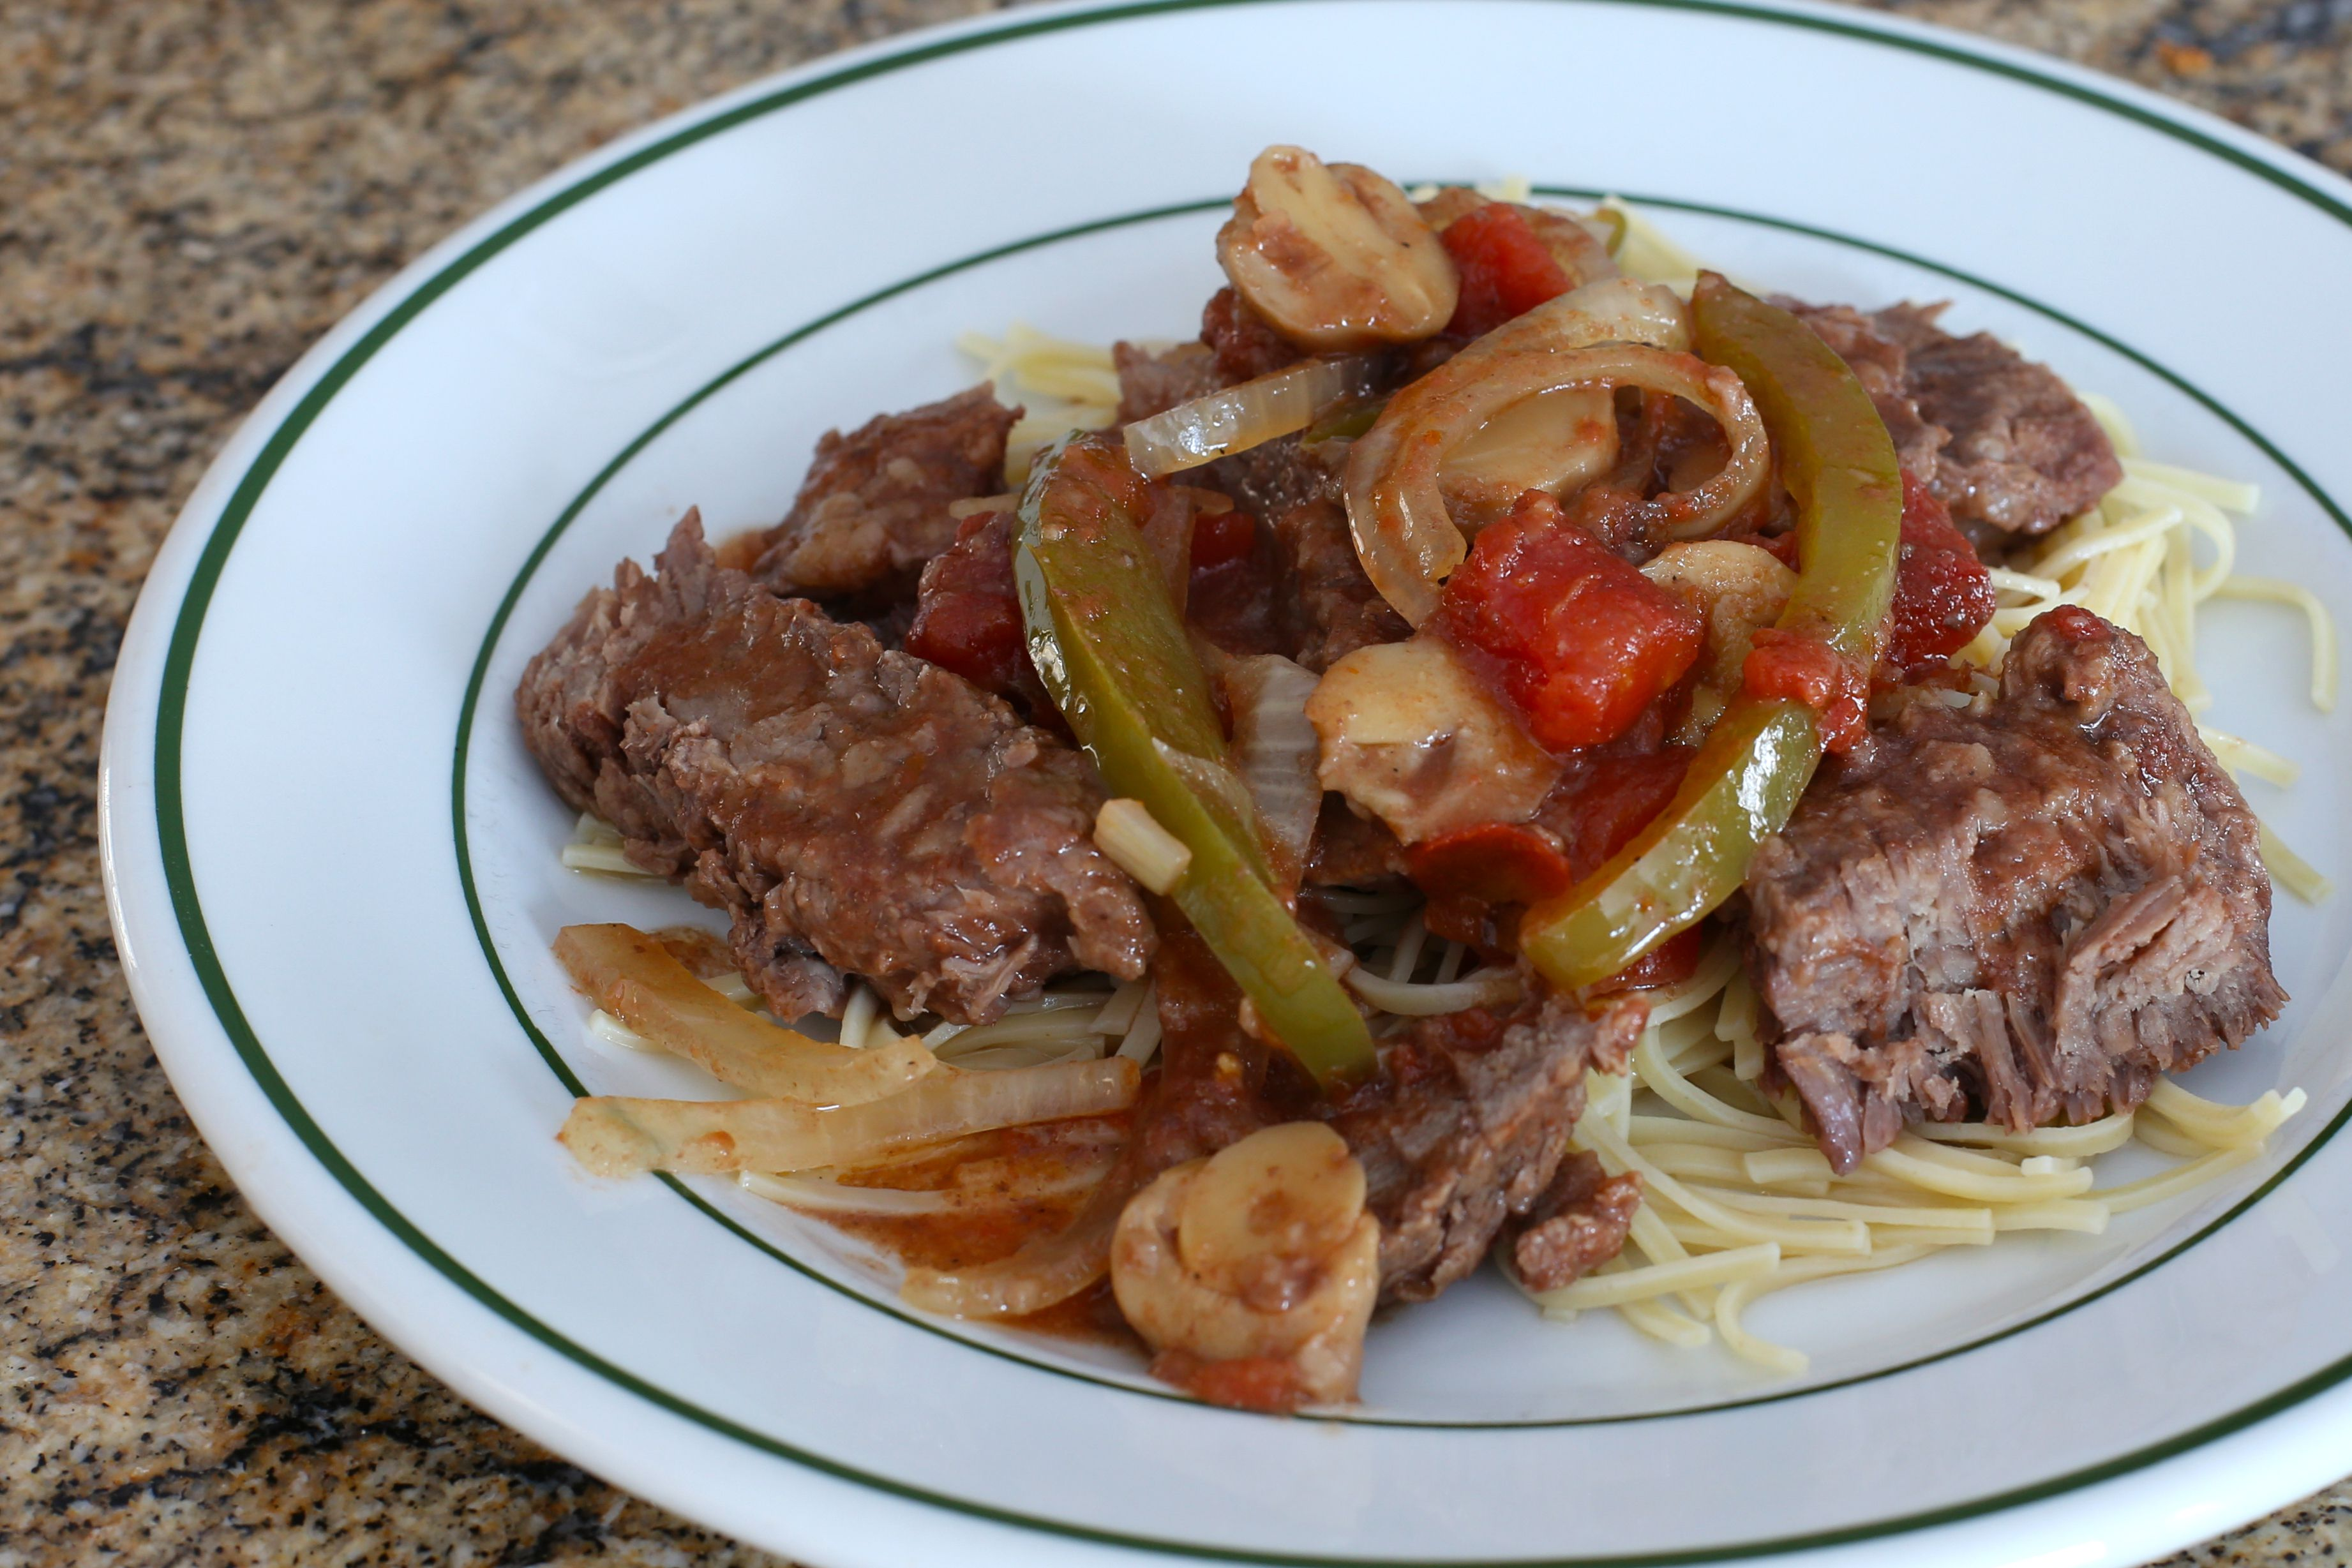 Smothered steak with peppers, slow cooker.